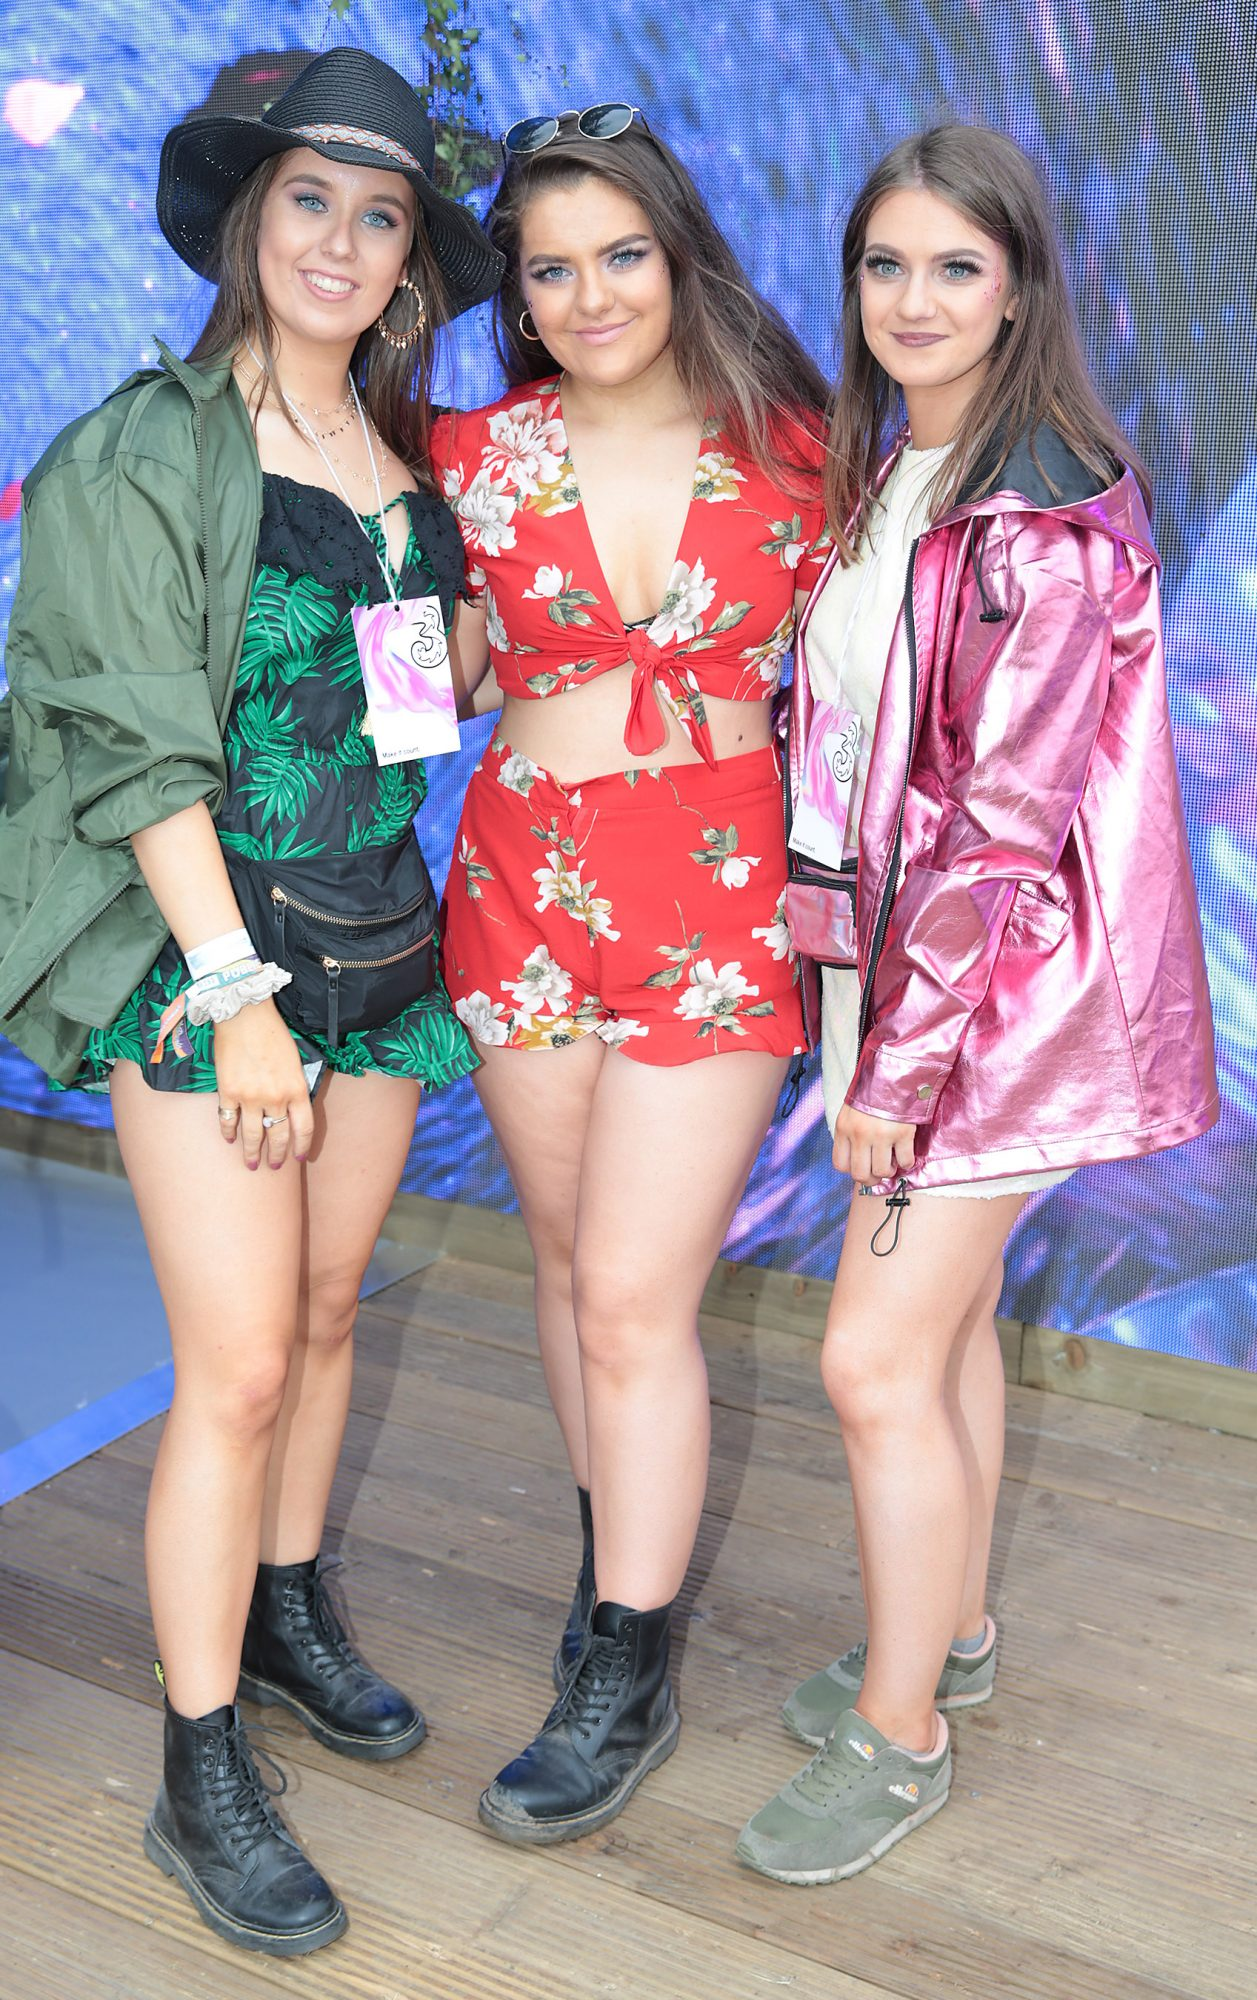 Aisling Quigley, from Valentia Island, Georgina Smith, from Doaer Aine, and Mairead Walsh, from Meeling, at Three's Charge & Chill at Electric Picnic at Stradbally, Co. Laois. Picture: Brian McEvoyNo Repro fee for one use